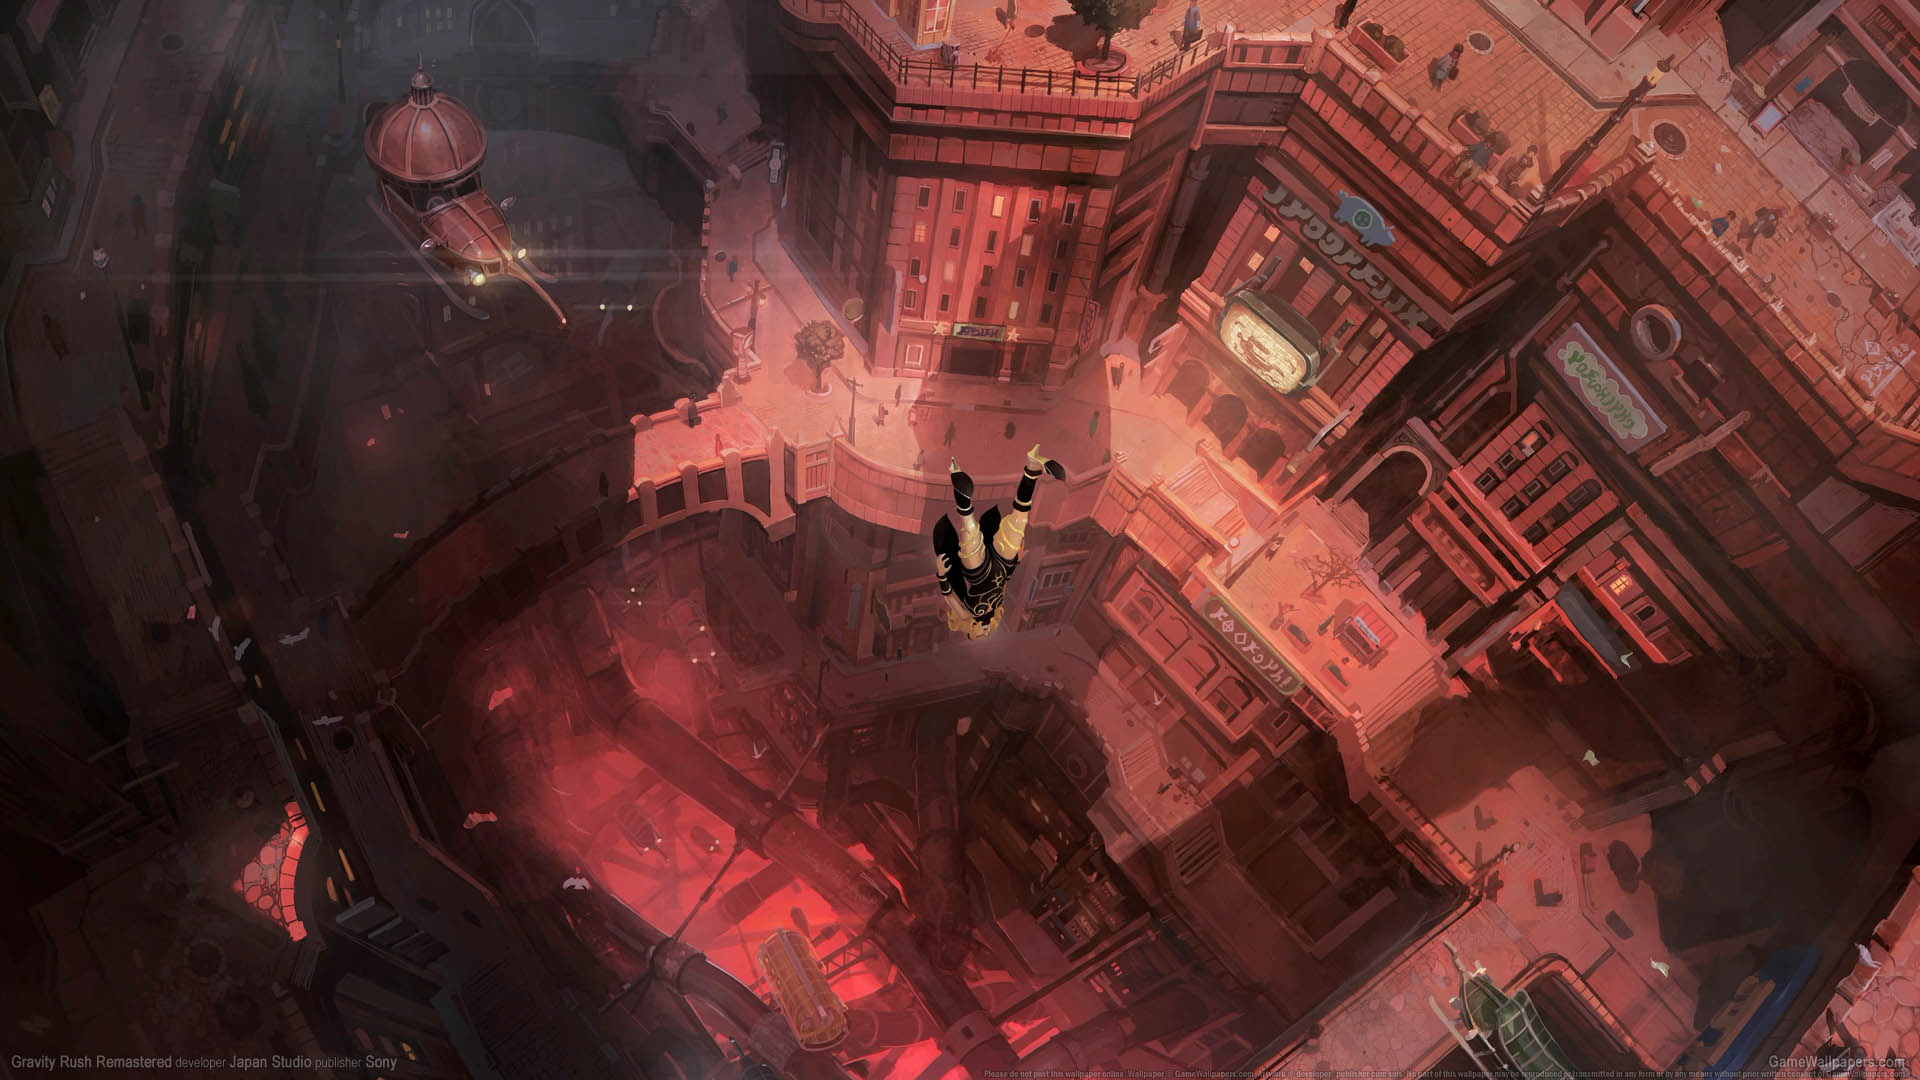 gravity rush iphone wallpaper